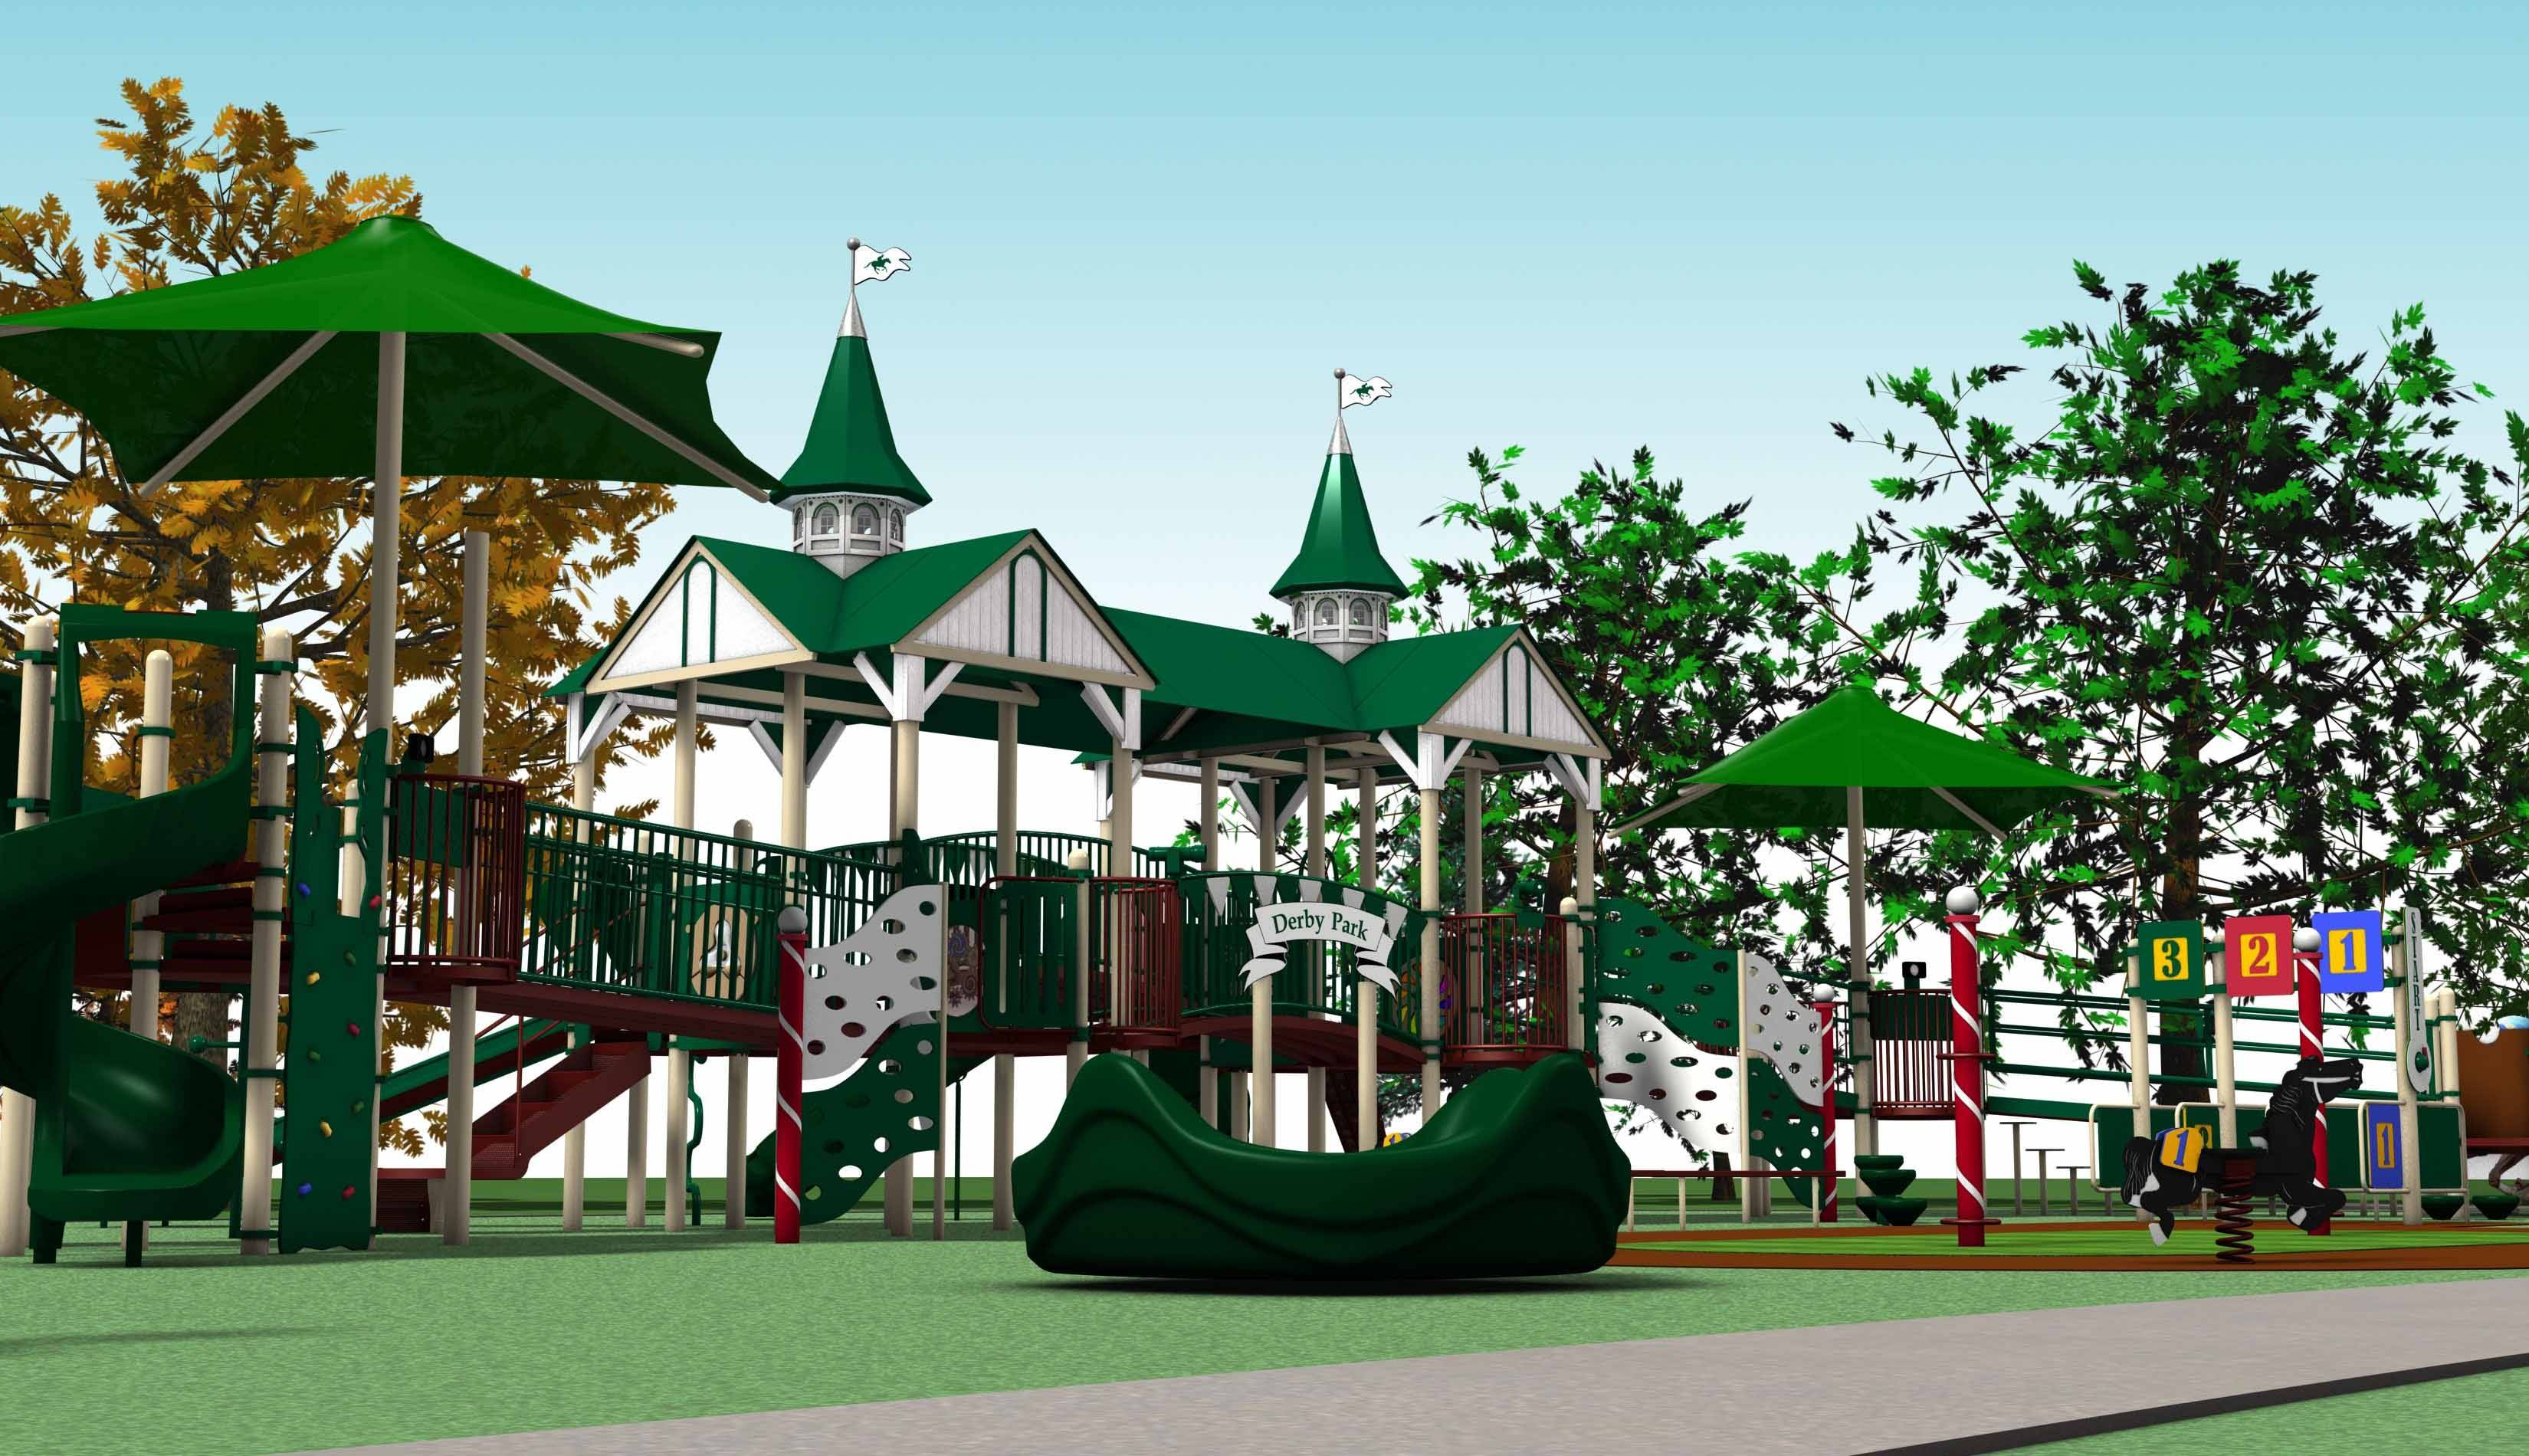 Construction is underway on the first phase of the Play for All playgrounds and gardens in Wheaton. Organizers are hoping the project, which is intended to provide recreation for everyone, regardless of disabilities, will open in the fall.